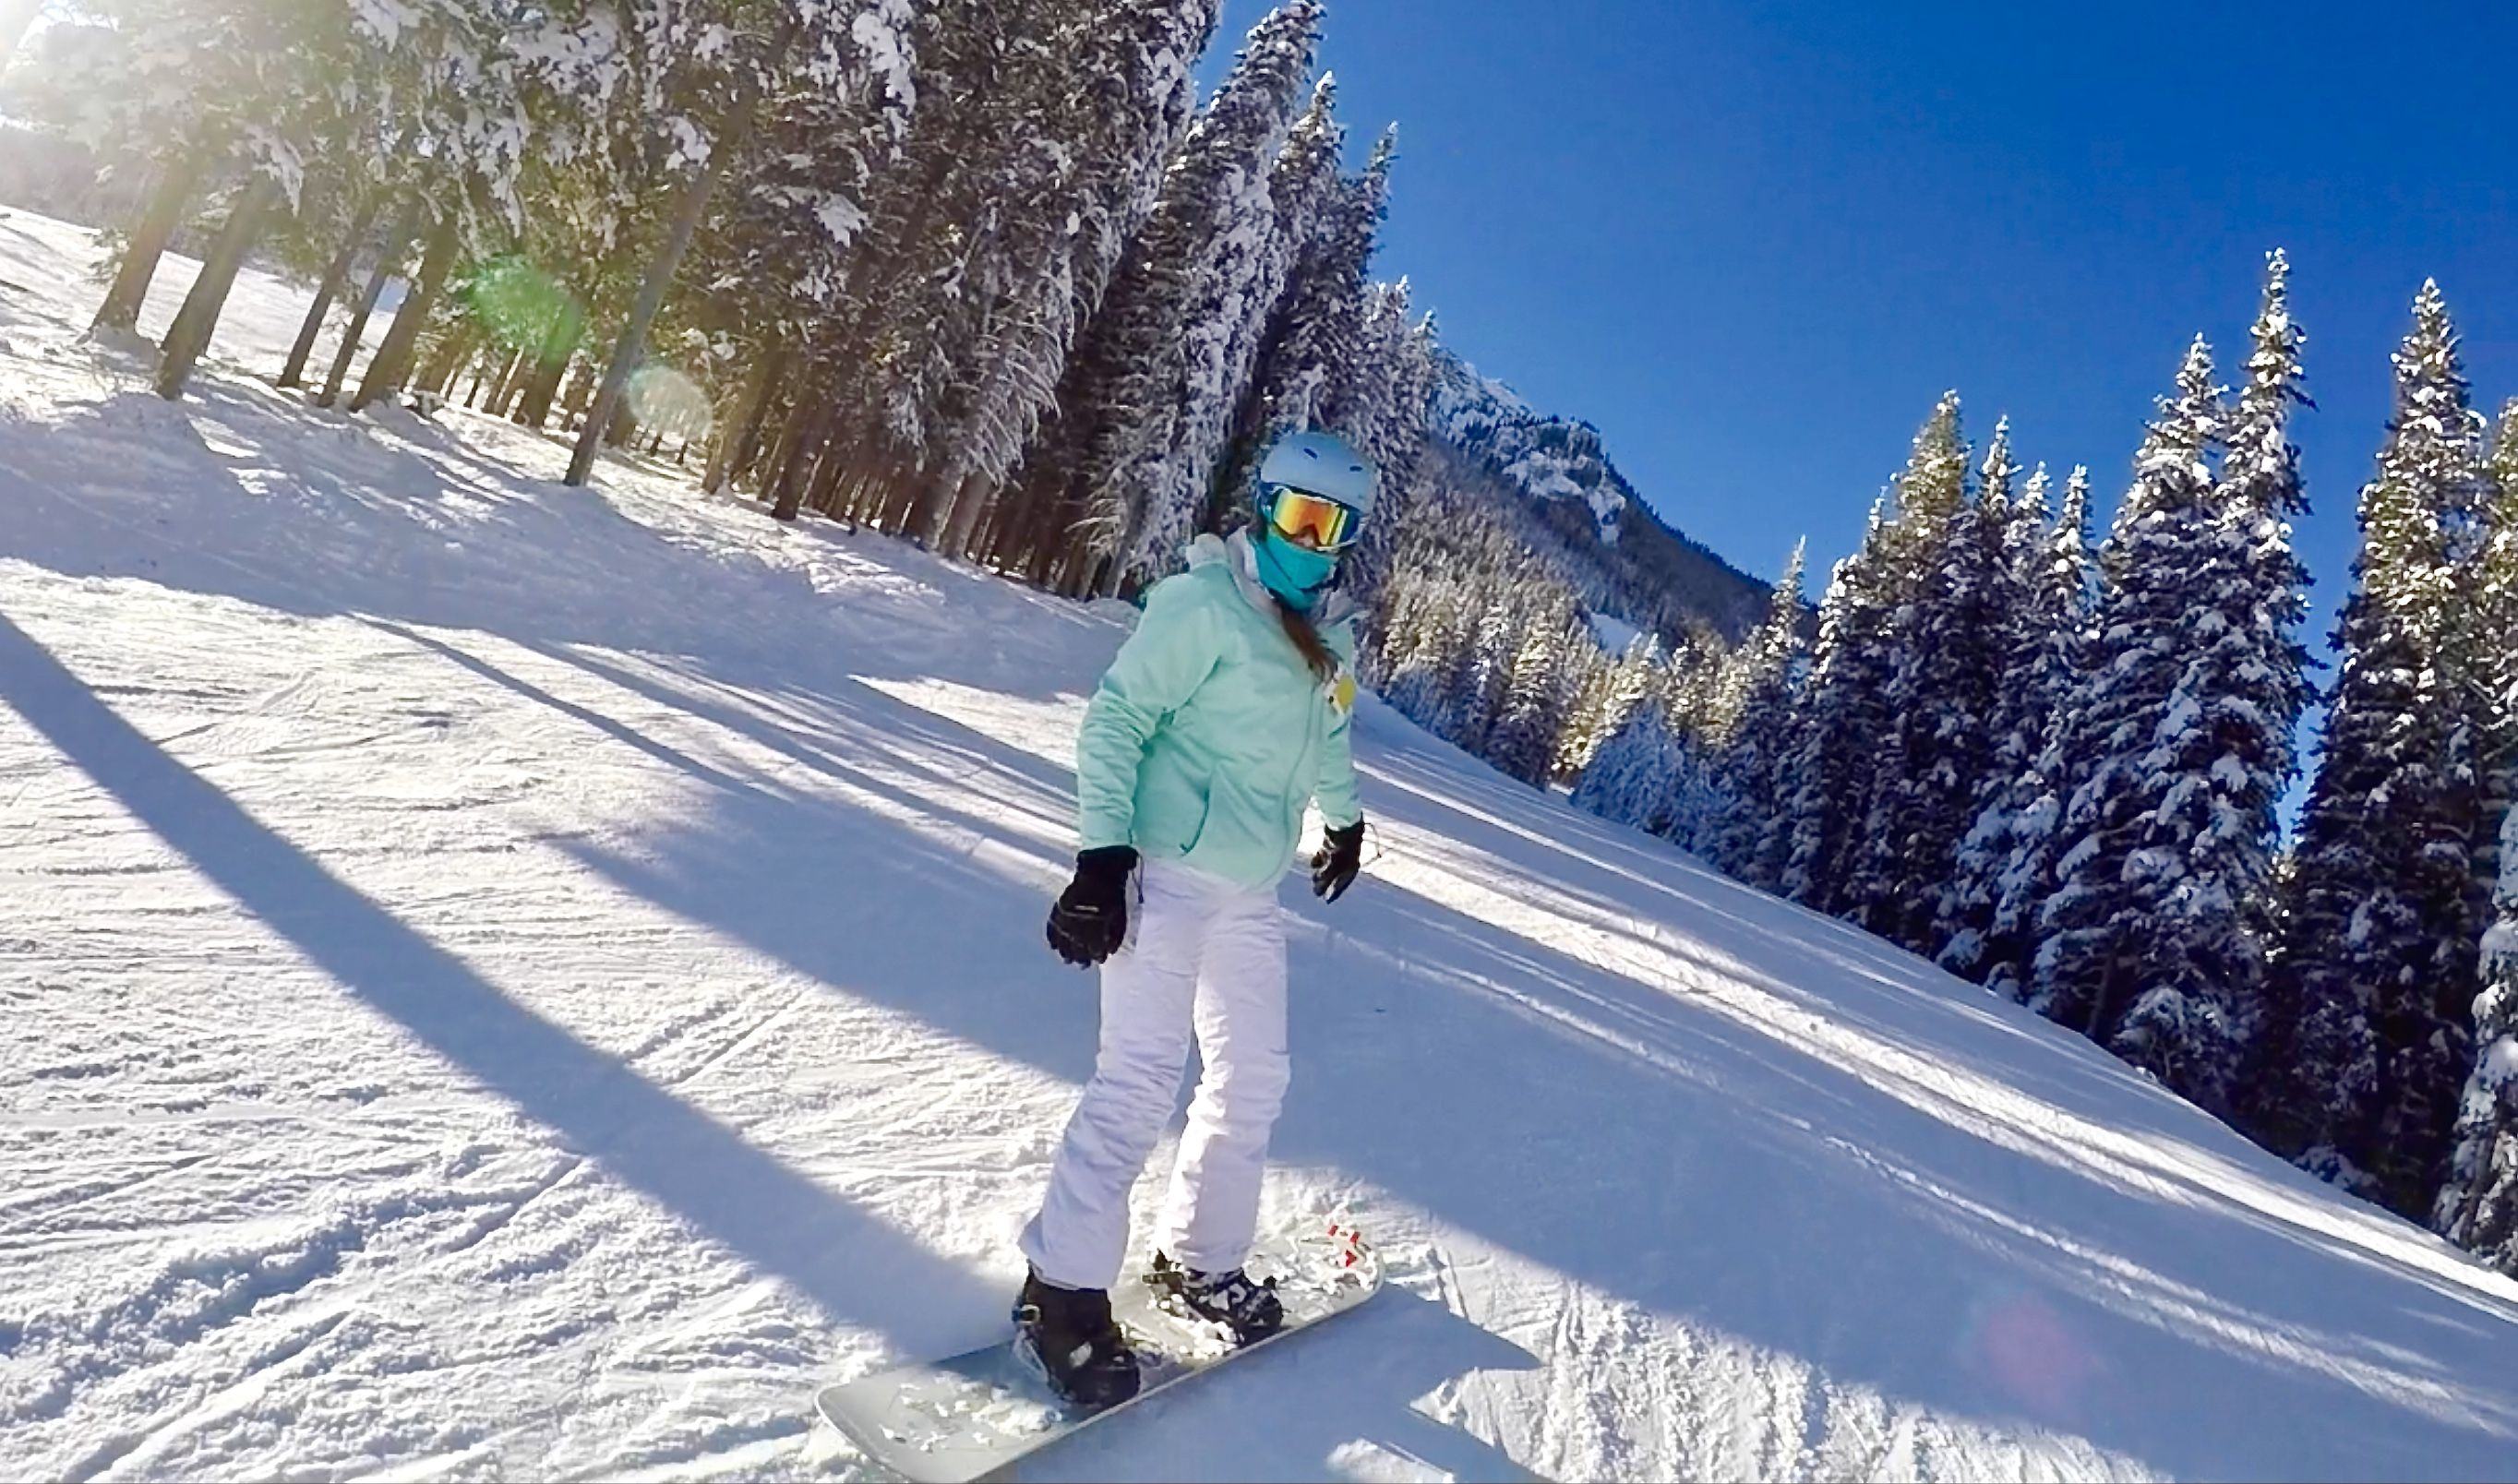 snowboarding at mount norquay in banff national park in alberta